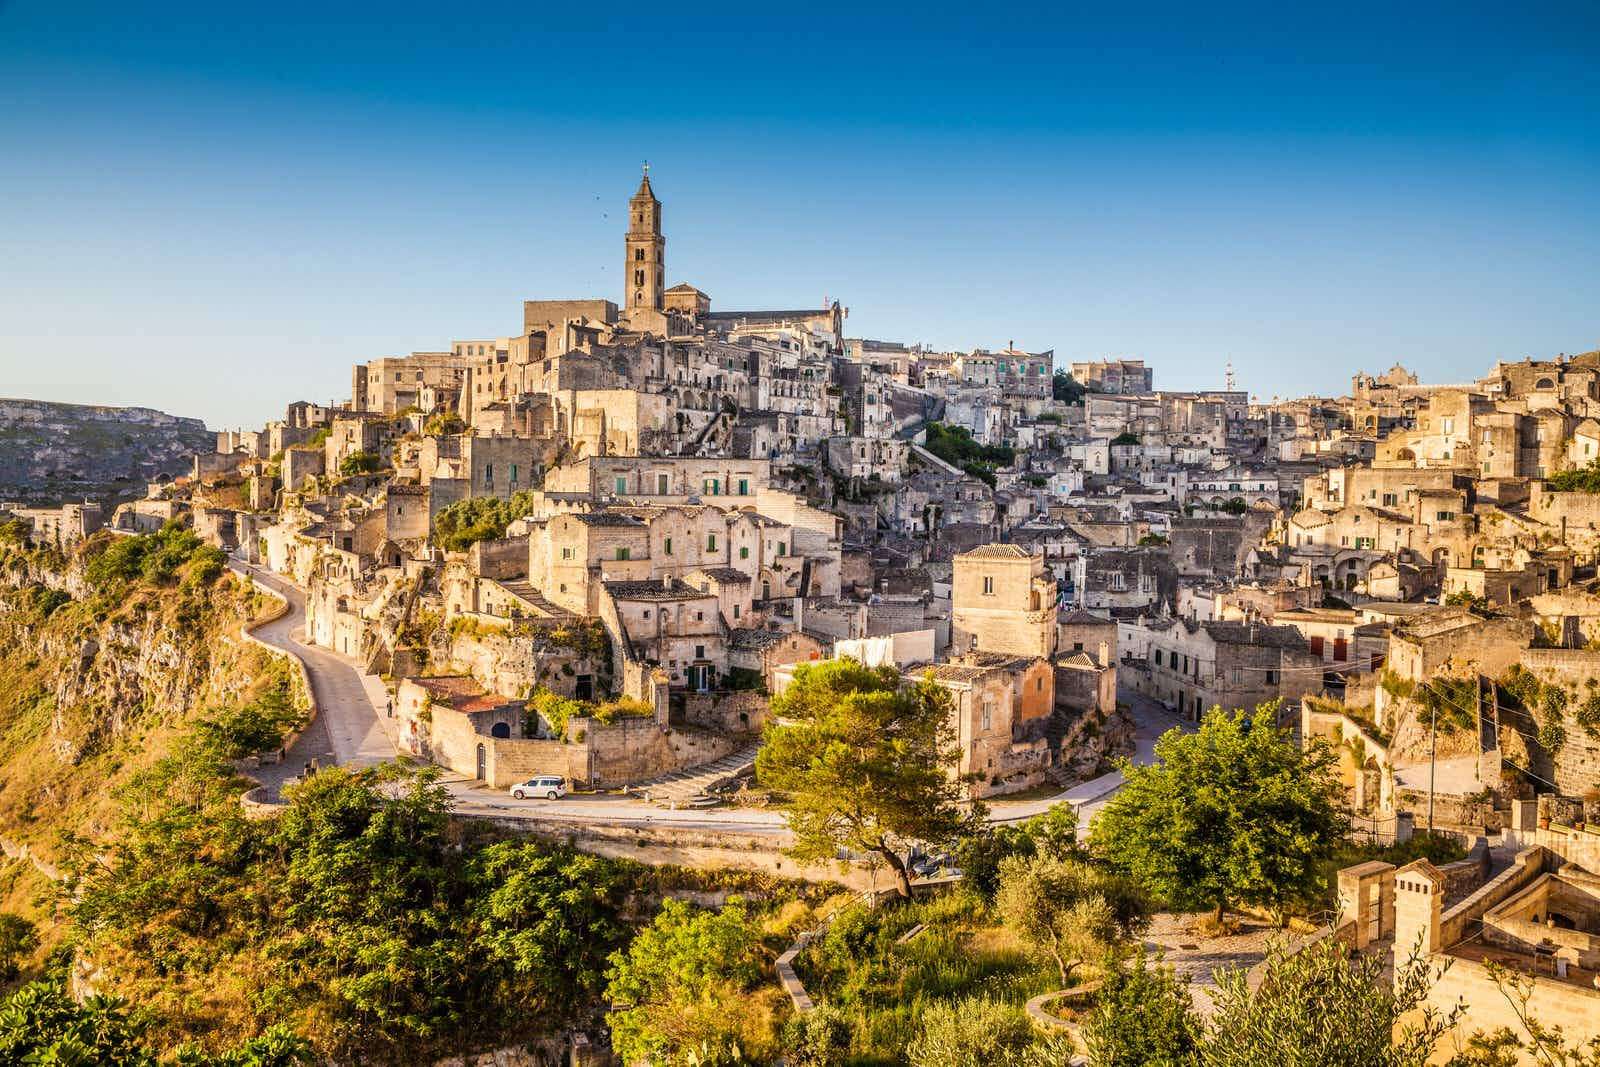 Matera's renaissance: new life in Italy's ancient cave city